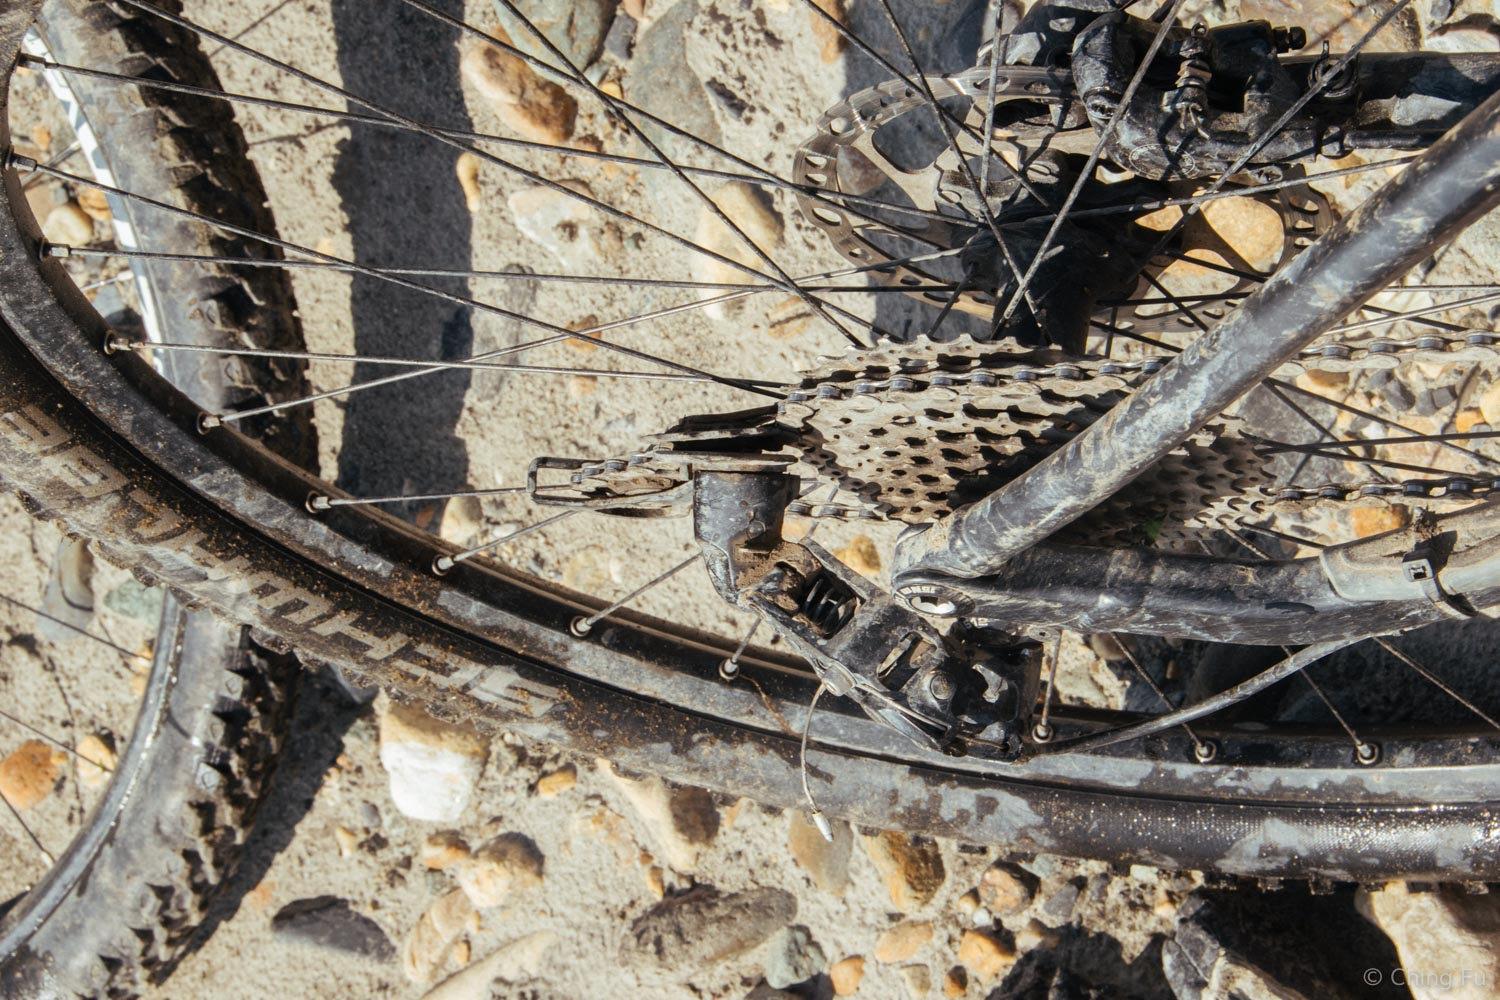 Not how a derailleur is supposed to look.